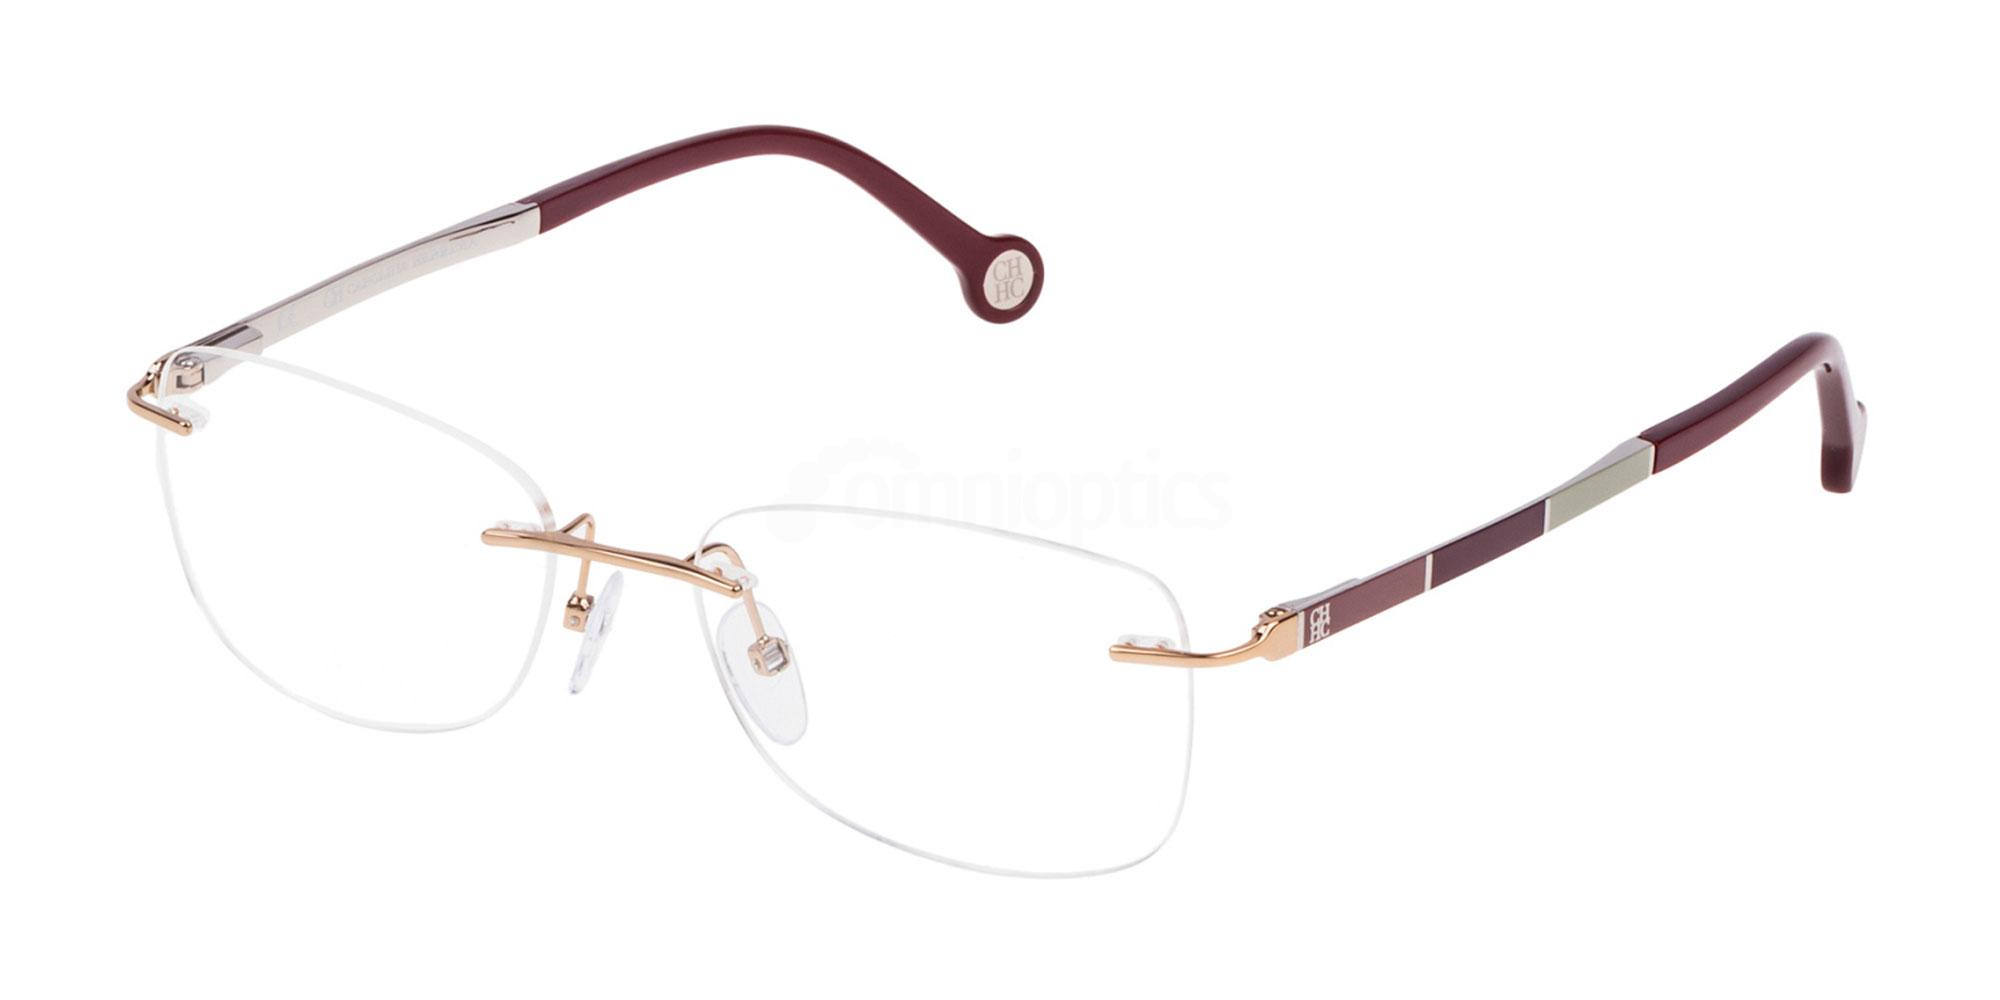 0300 VHE078 Glasses, CH Carolina Herrera